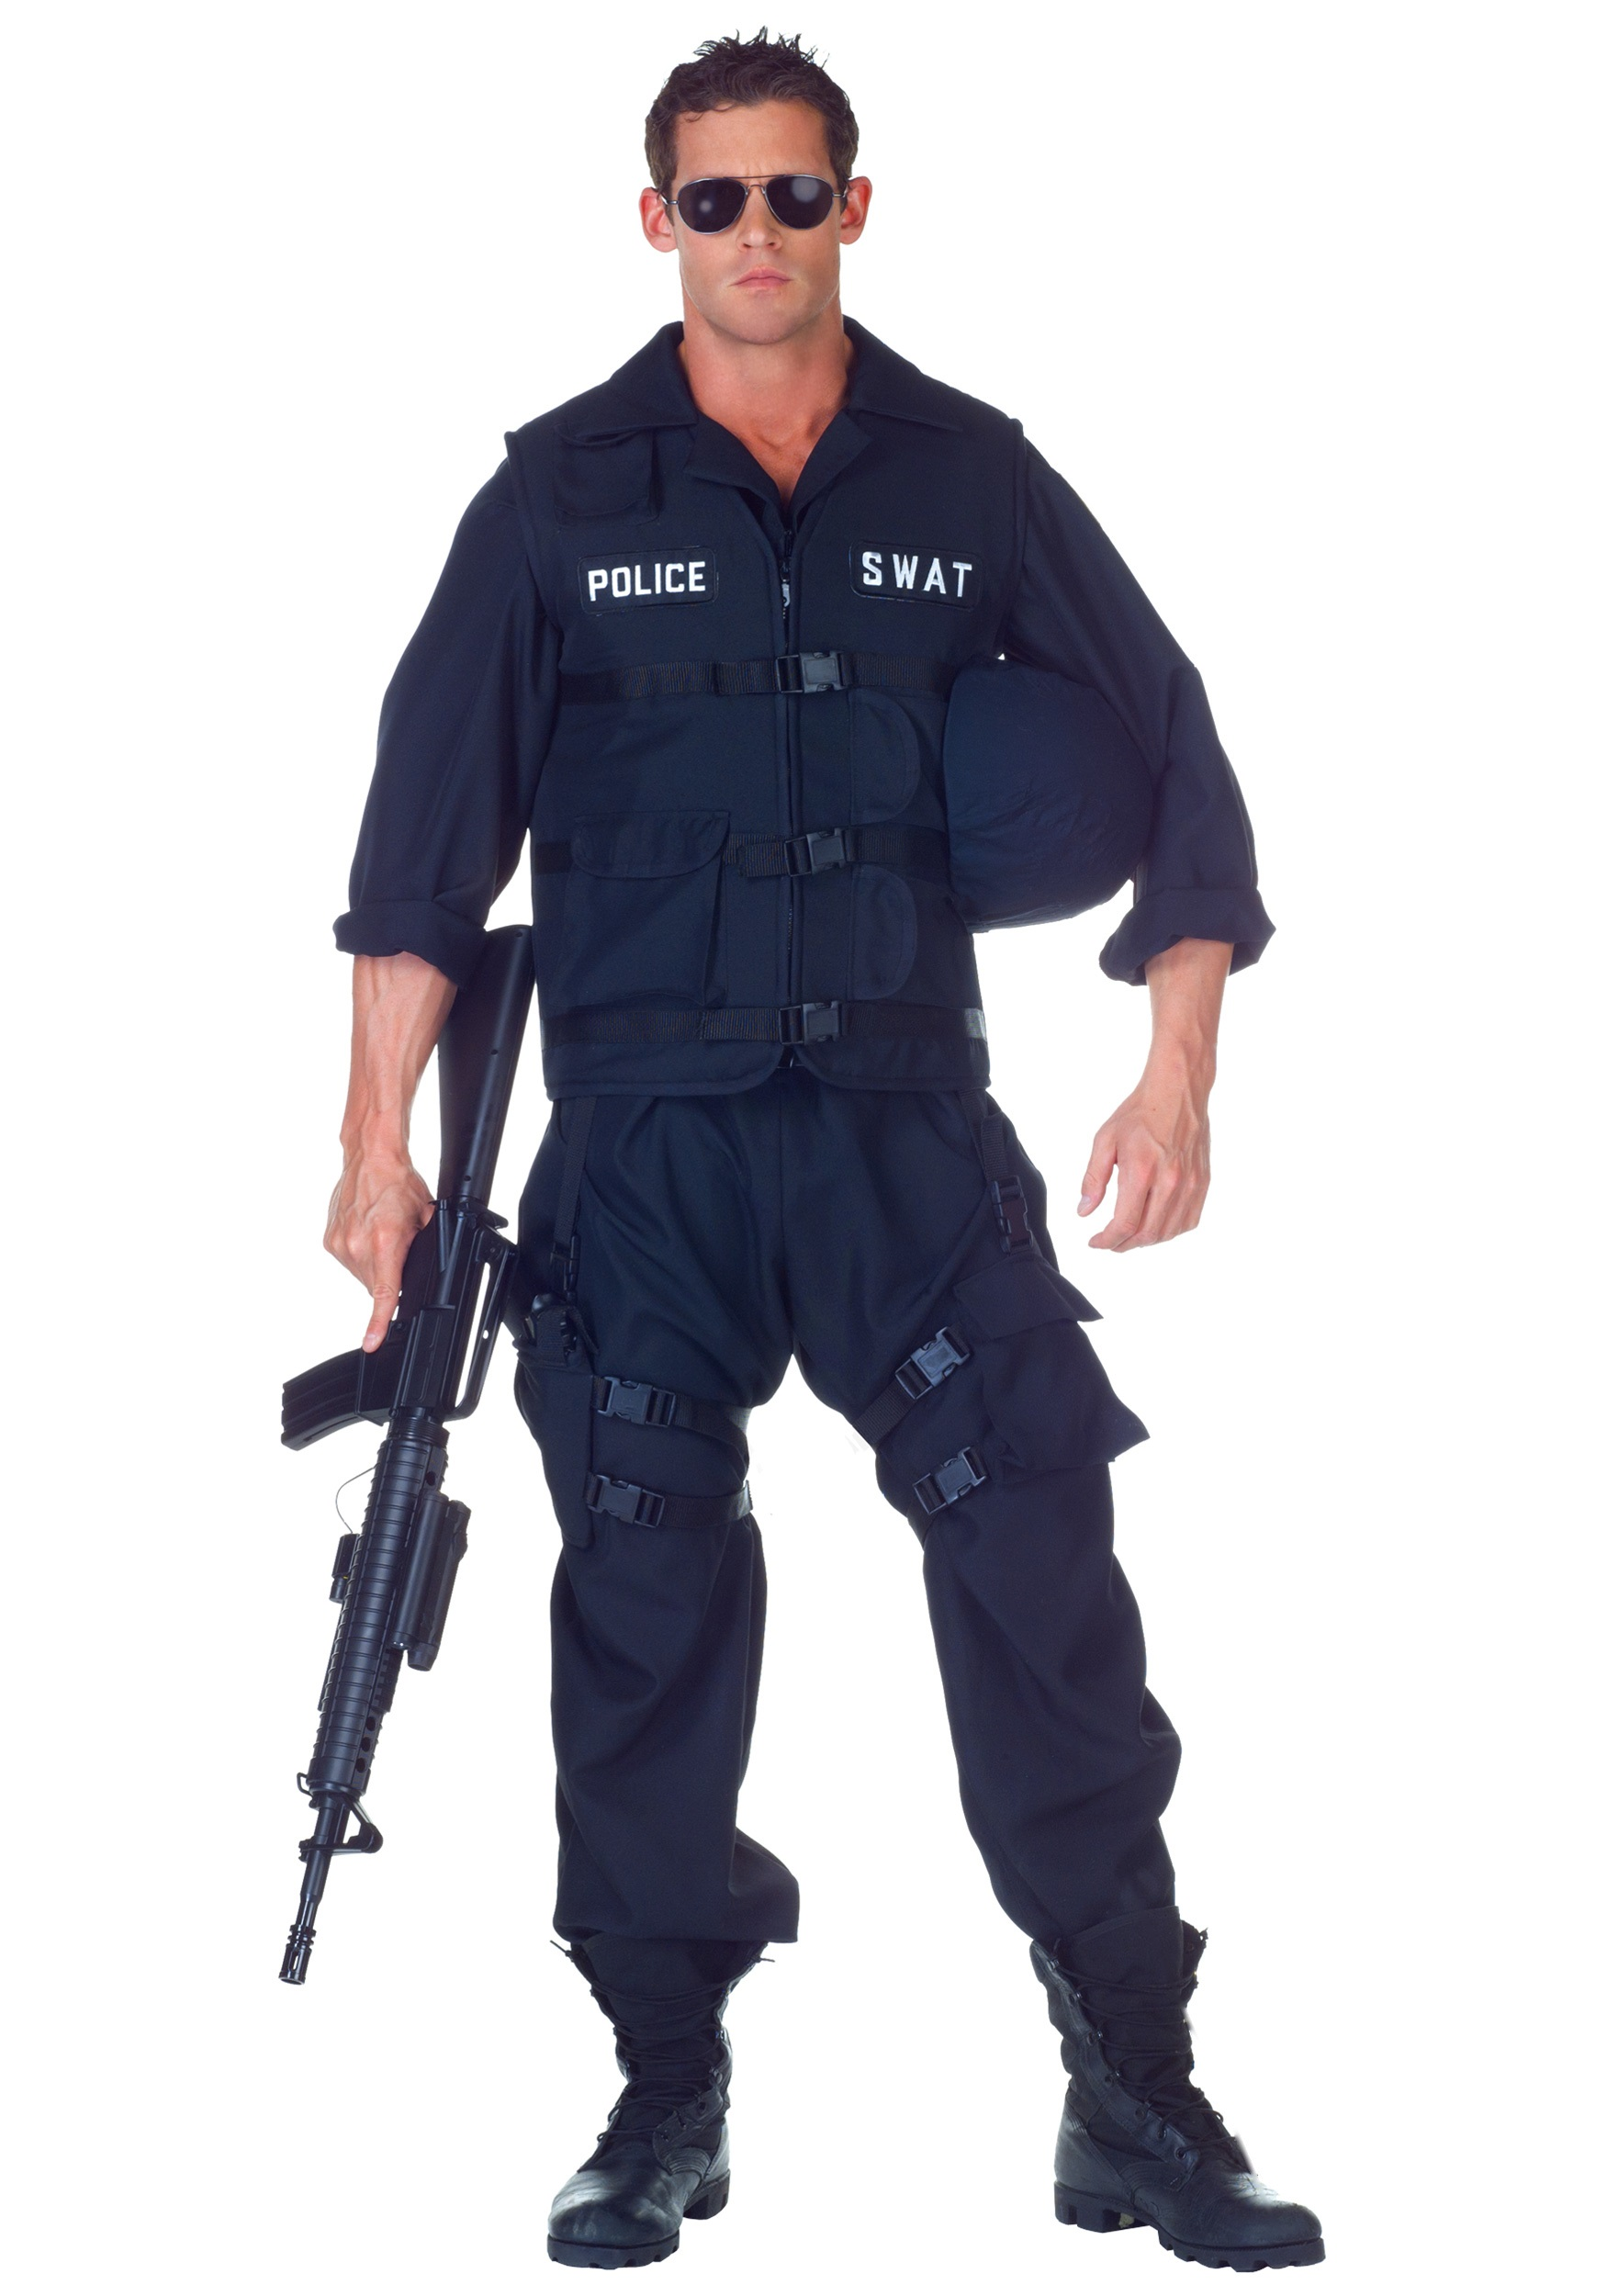 Men's Police Costumes - Adult Cop Halloween Costume Ideas